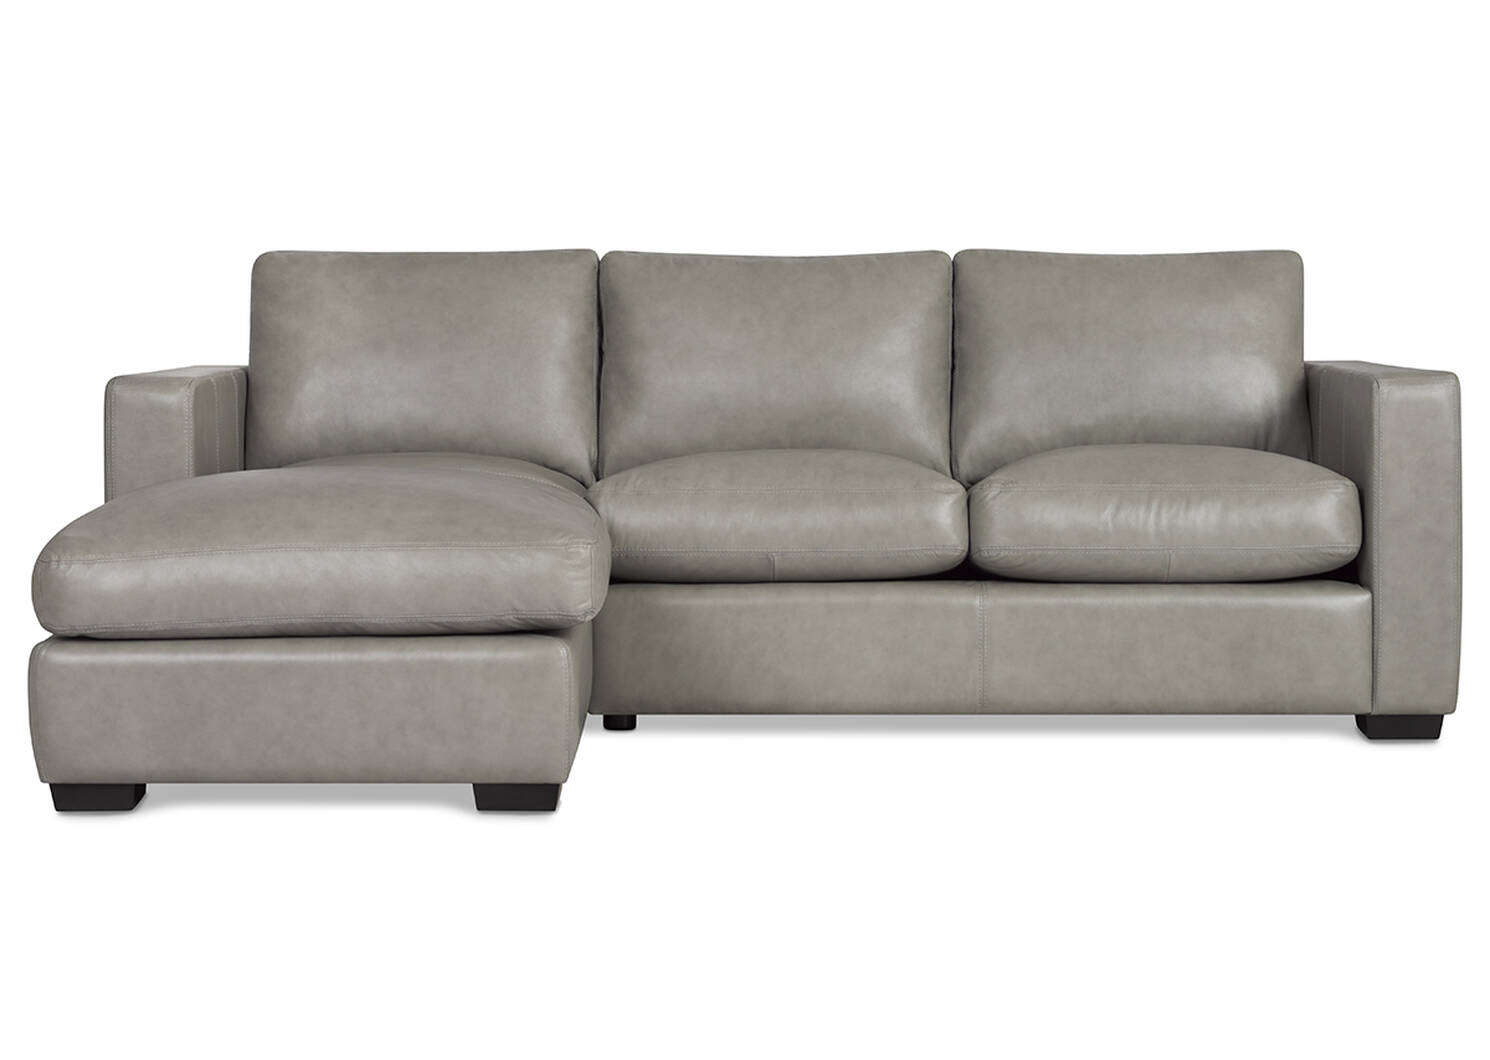 Brewer Custom Leather Sofa chaise